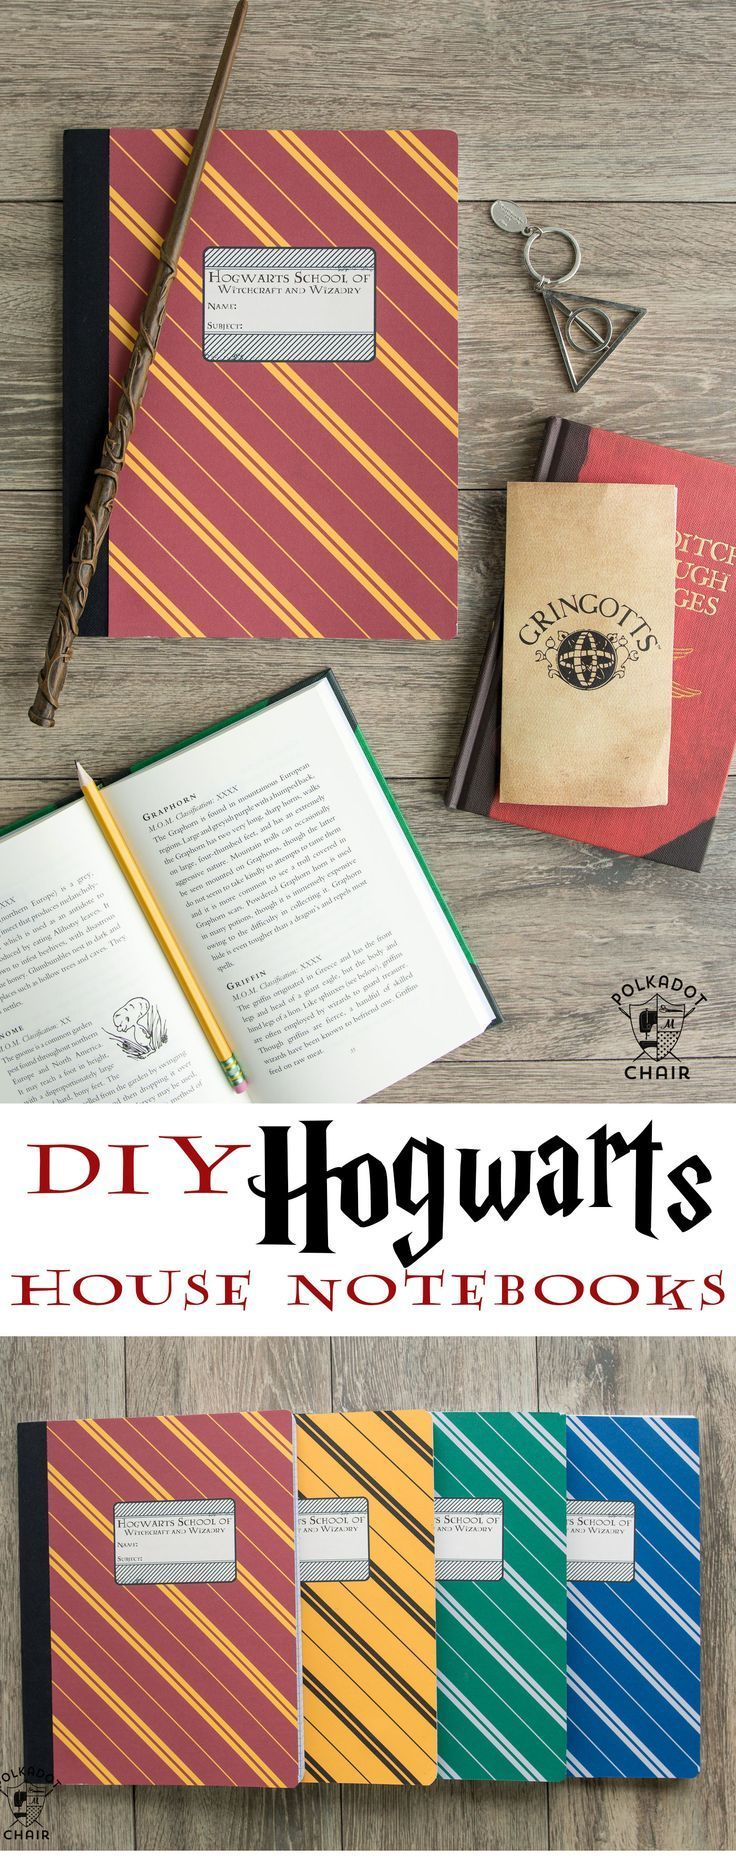 Illustrated Book Cover Ideas : Best harry potter journal ideas on pinterest sketch